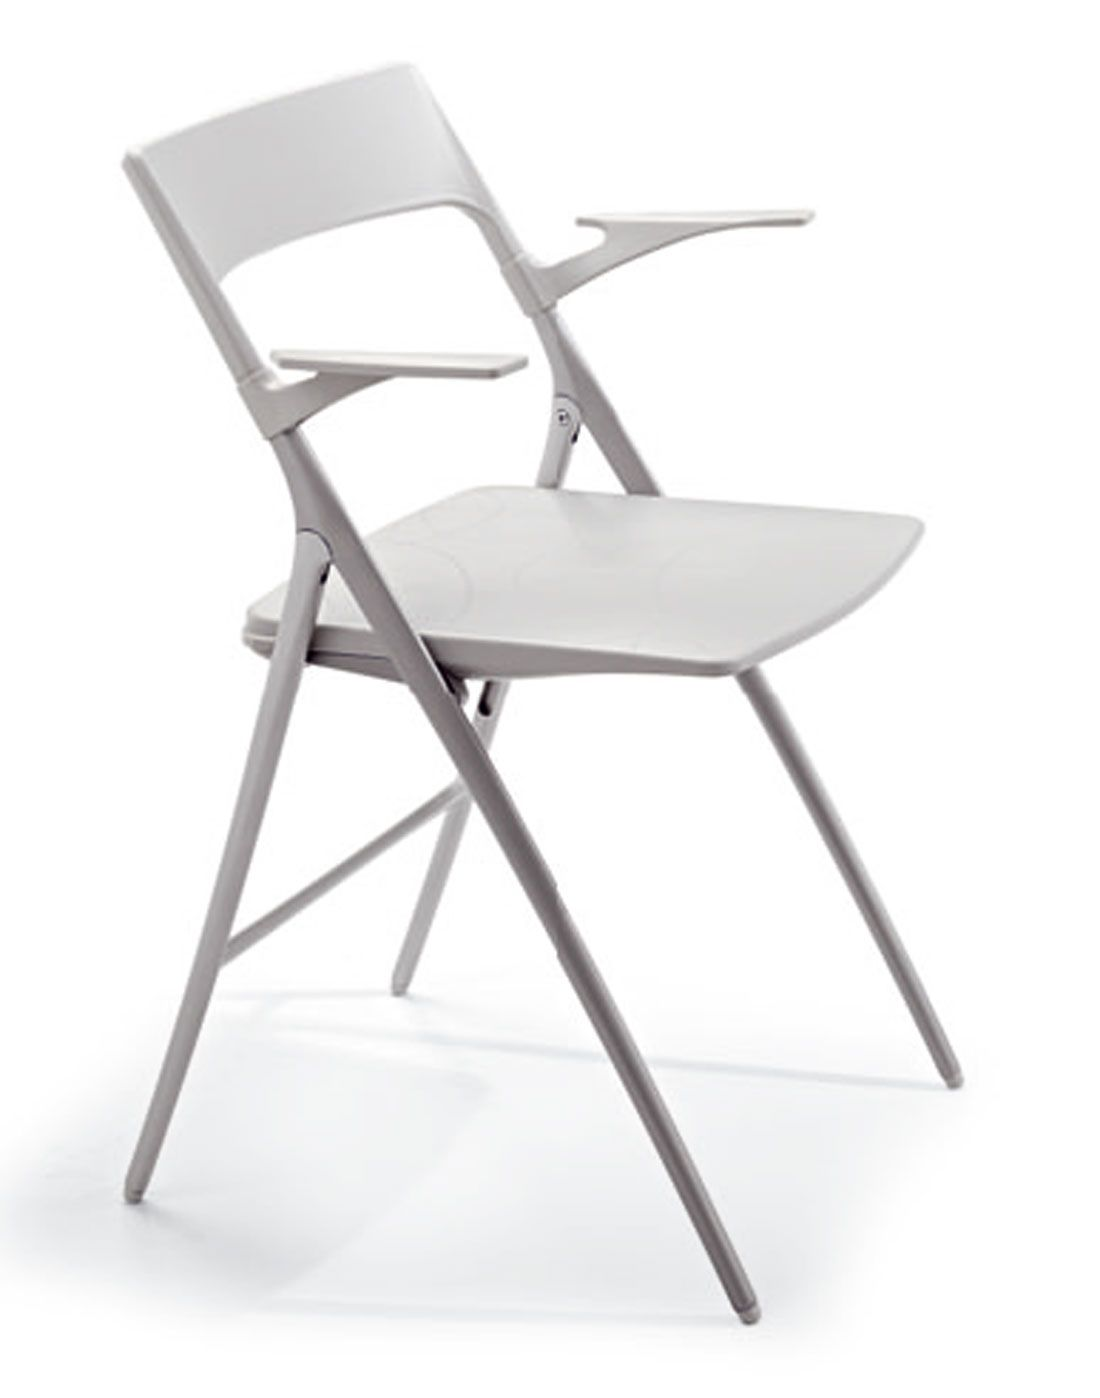 Folding Chair With Arms Designer Folding Chair With Arms Plek Online Reality